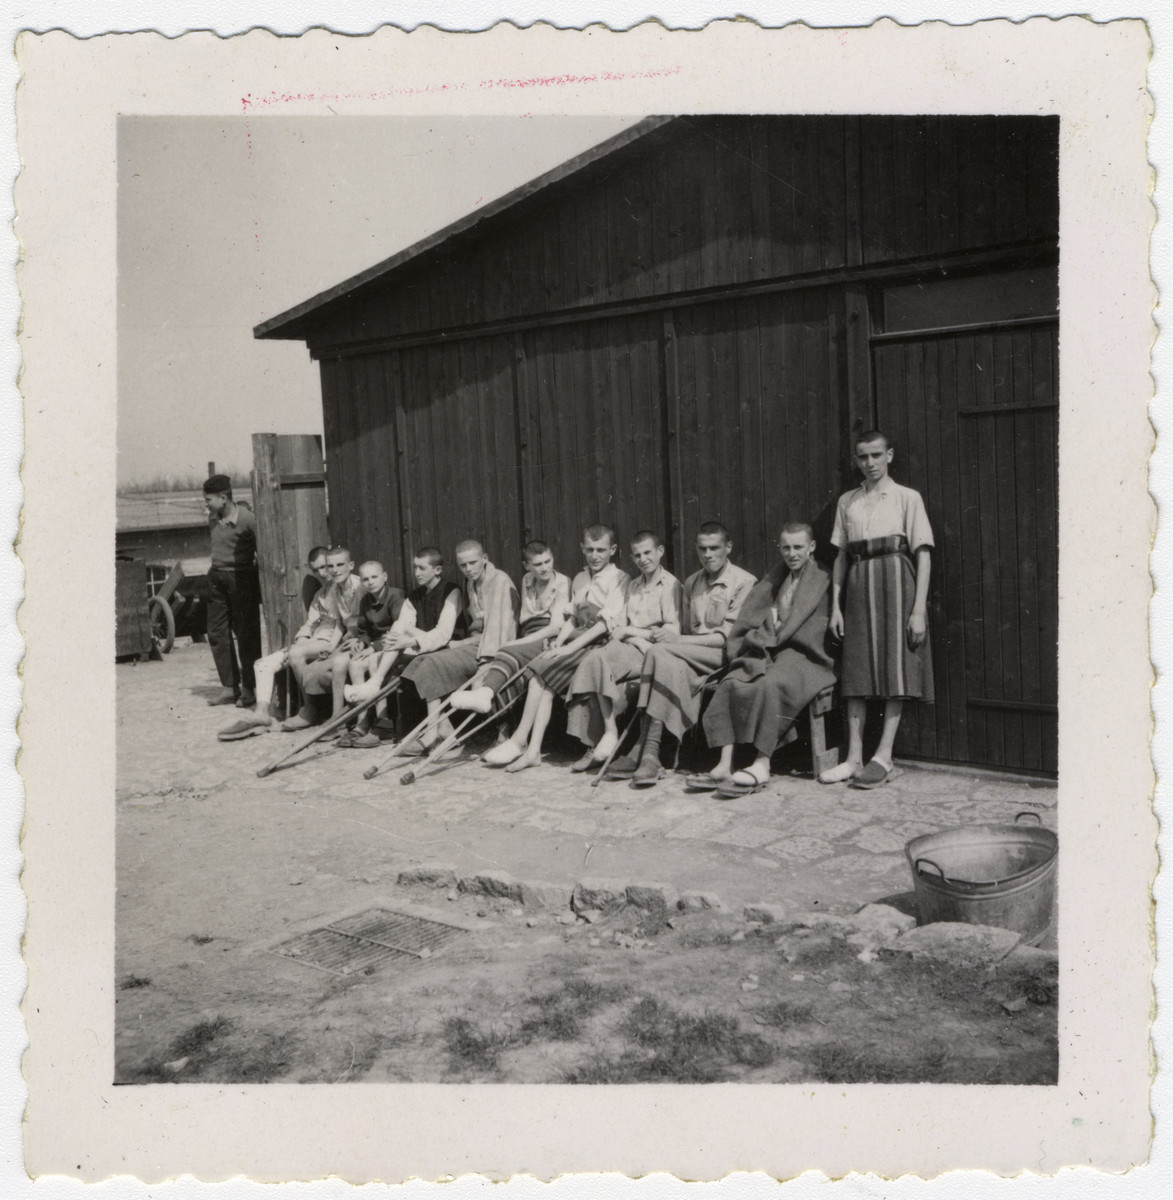 Survivors of the Buchenwald concentration camp, many with crutches, sit outside a barrack following liberation.